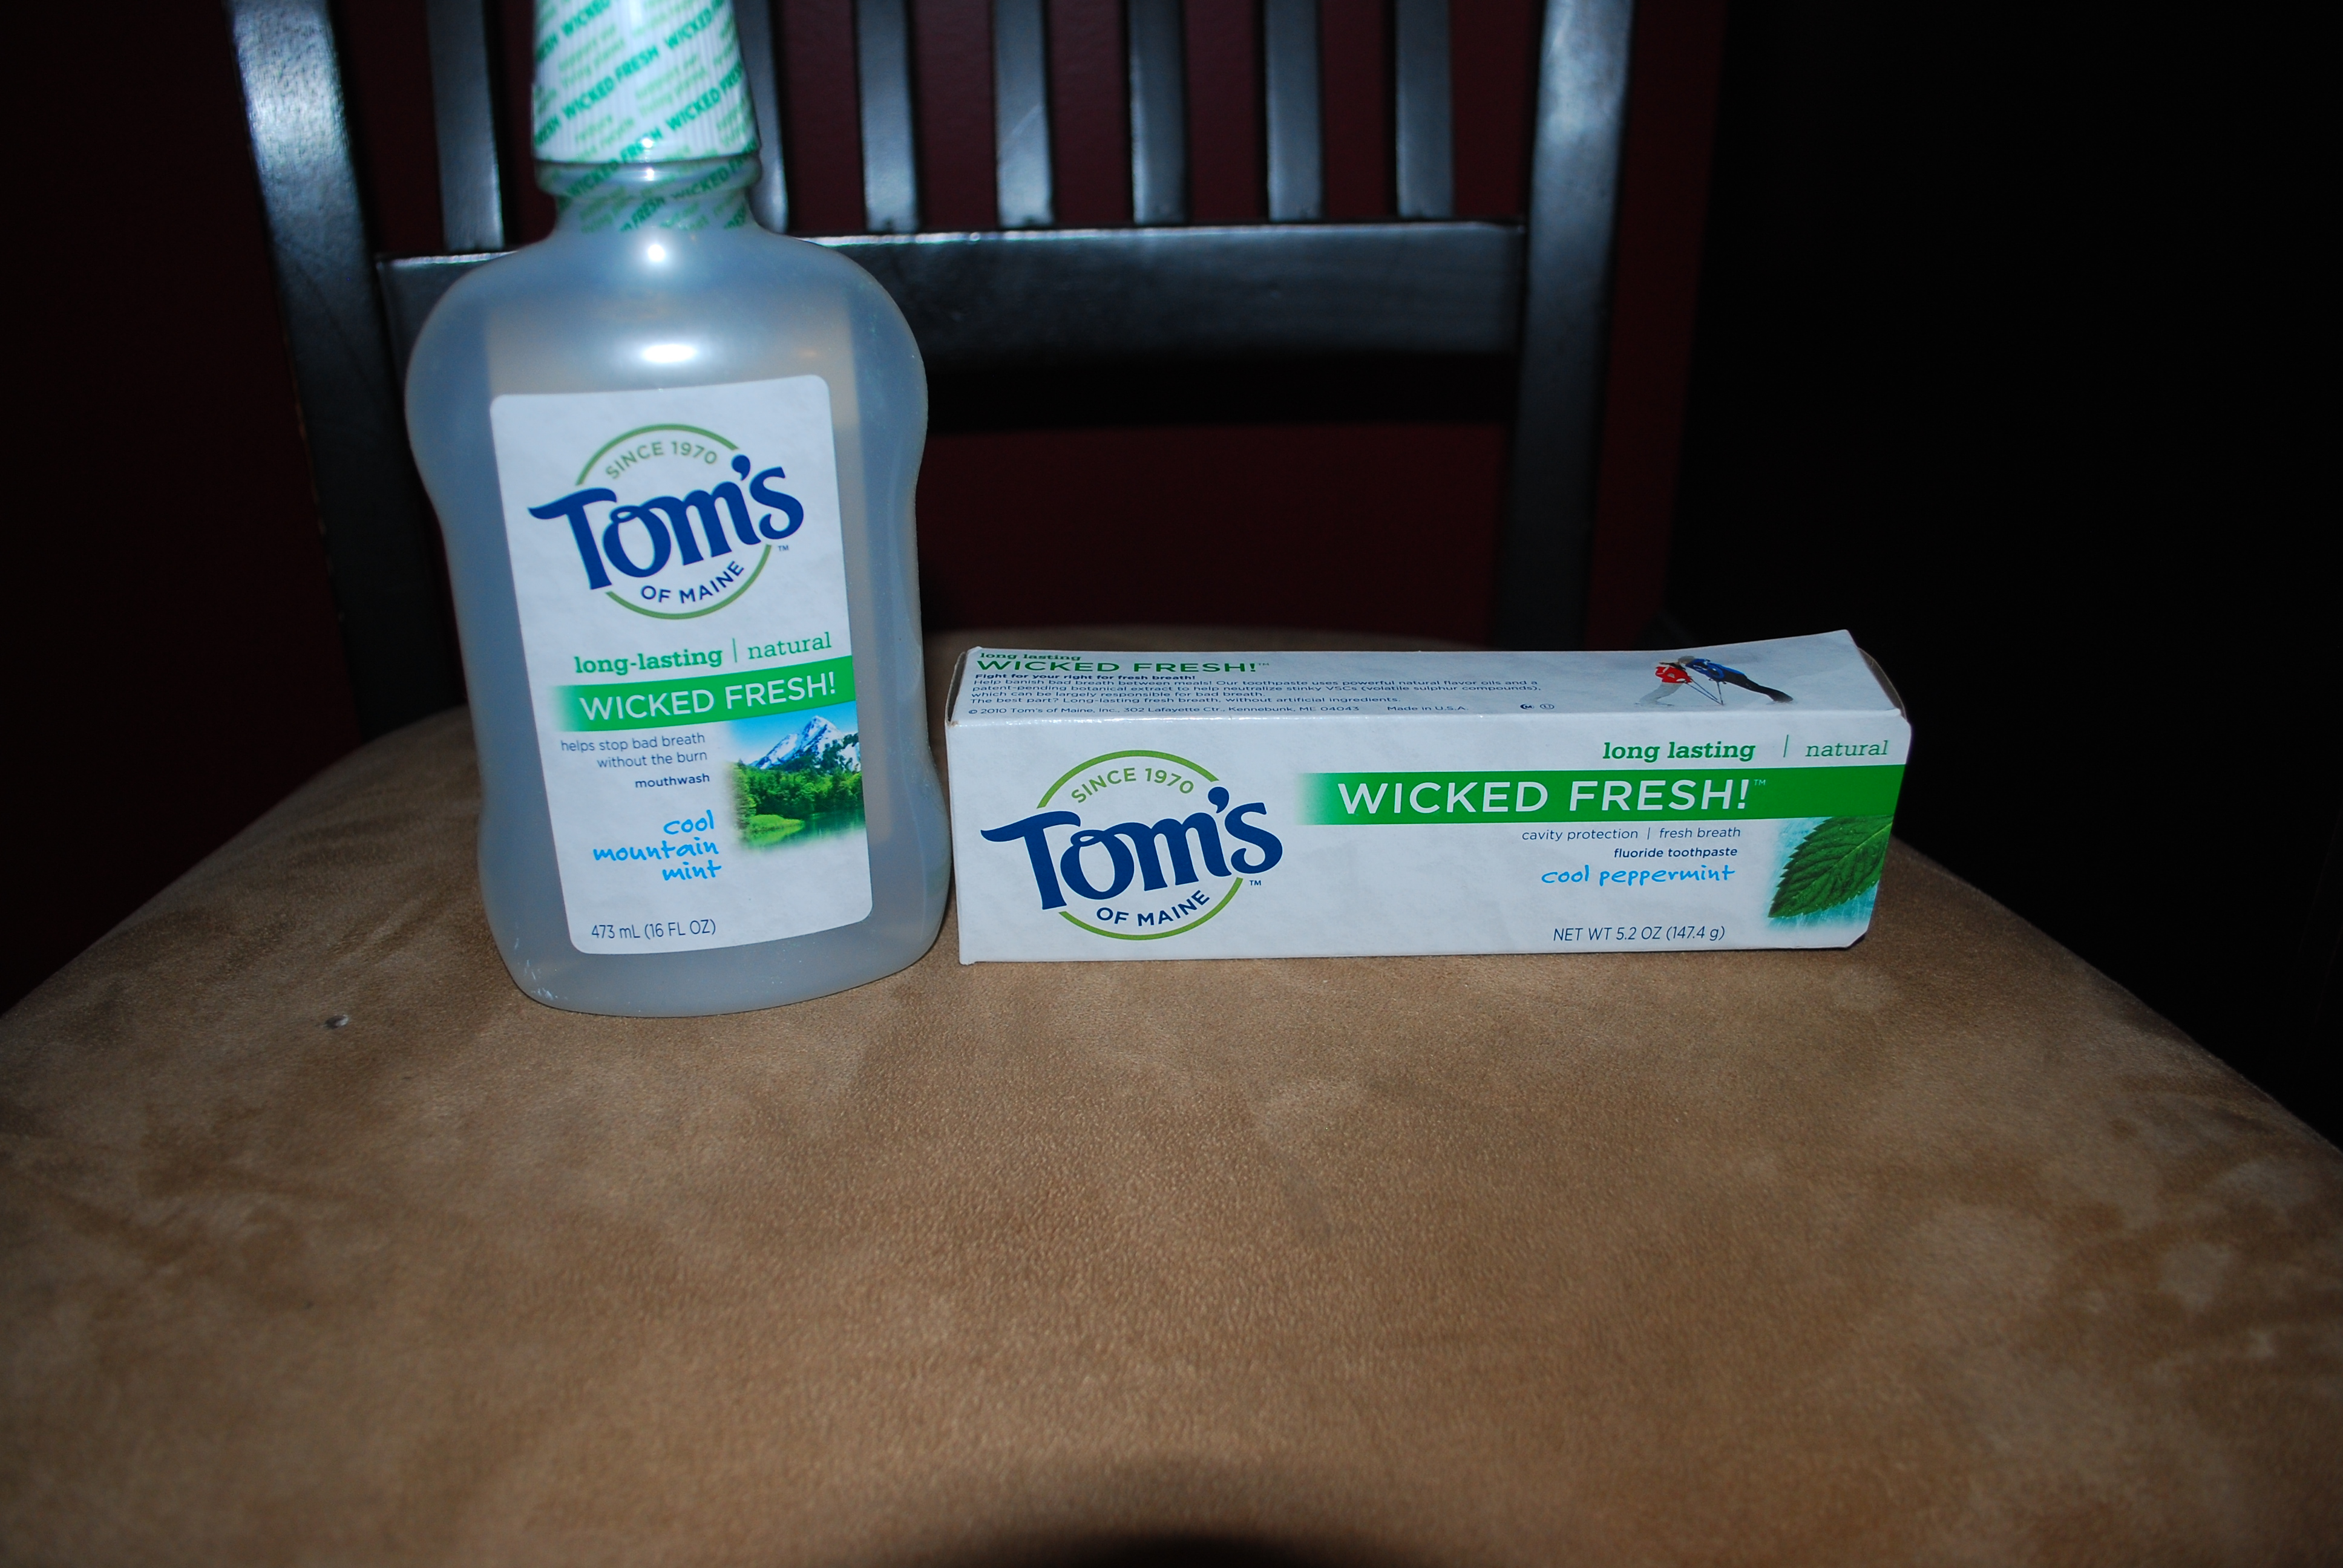 Tom's of Maine Wicked Fresh $50 Giveaway